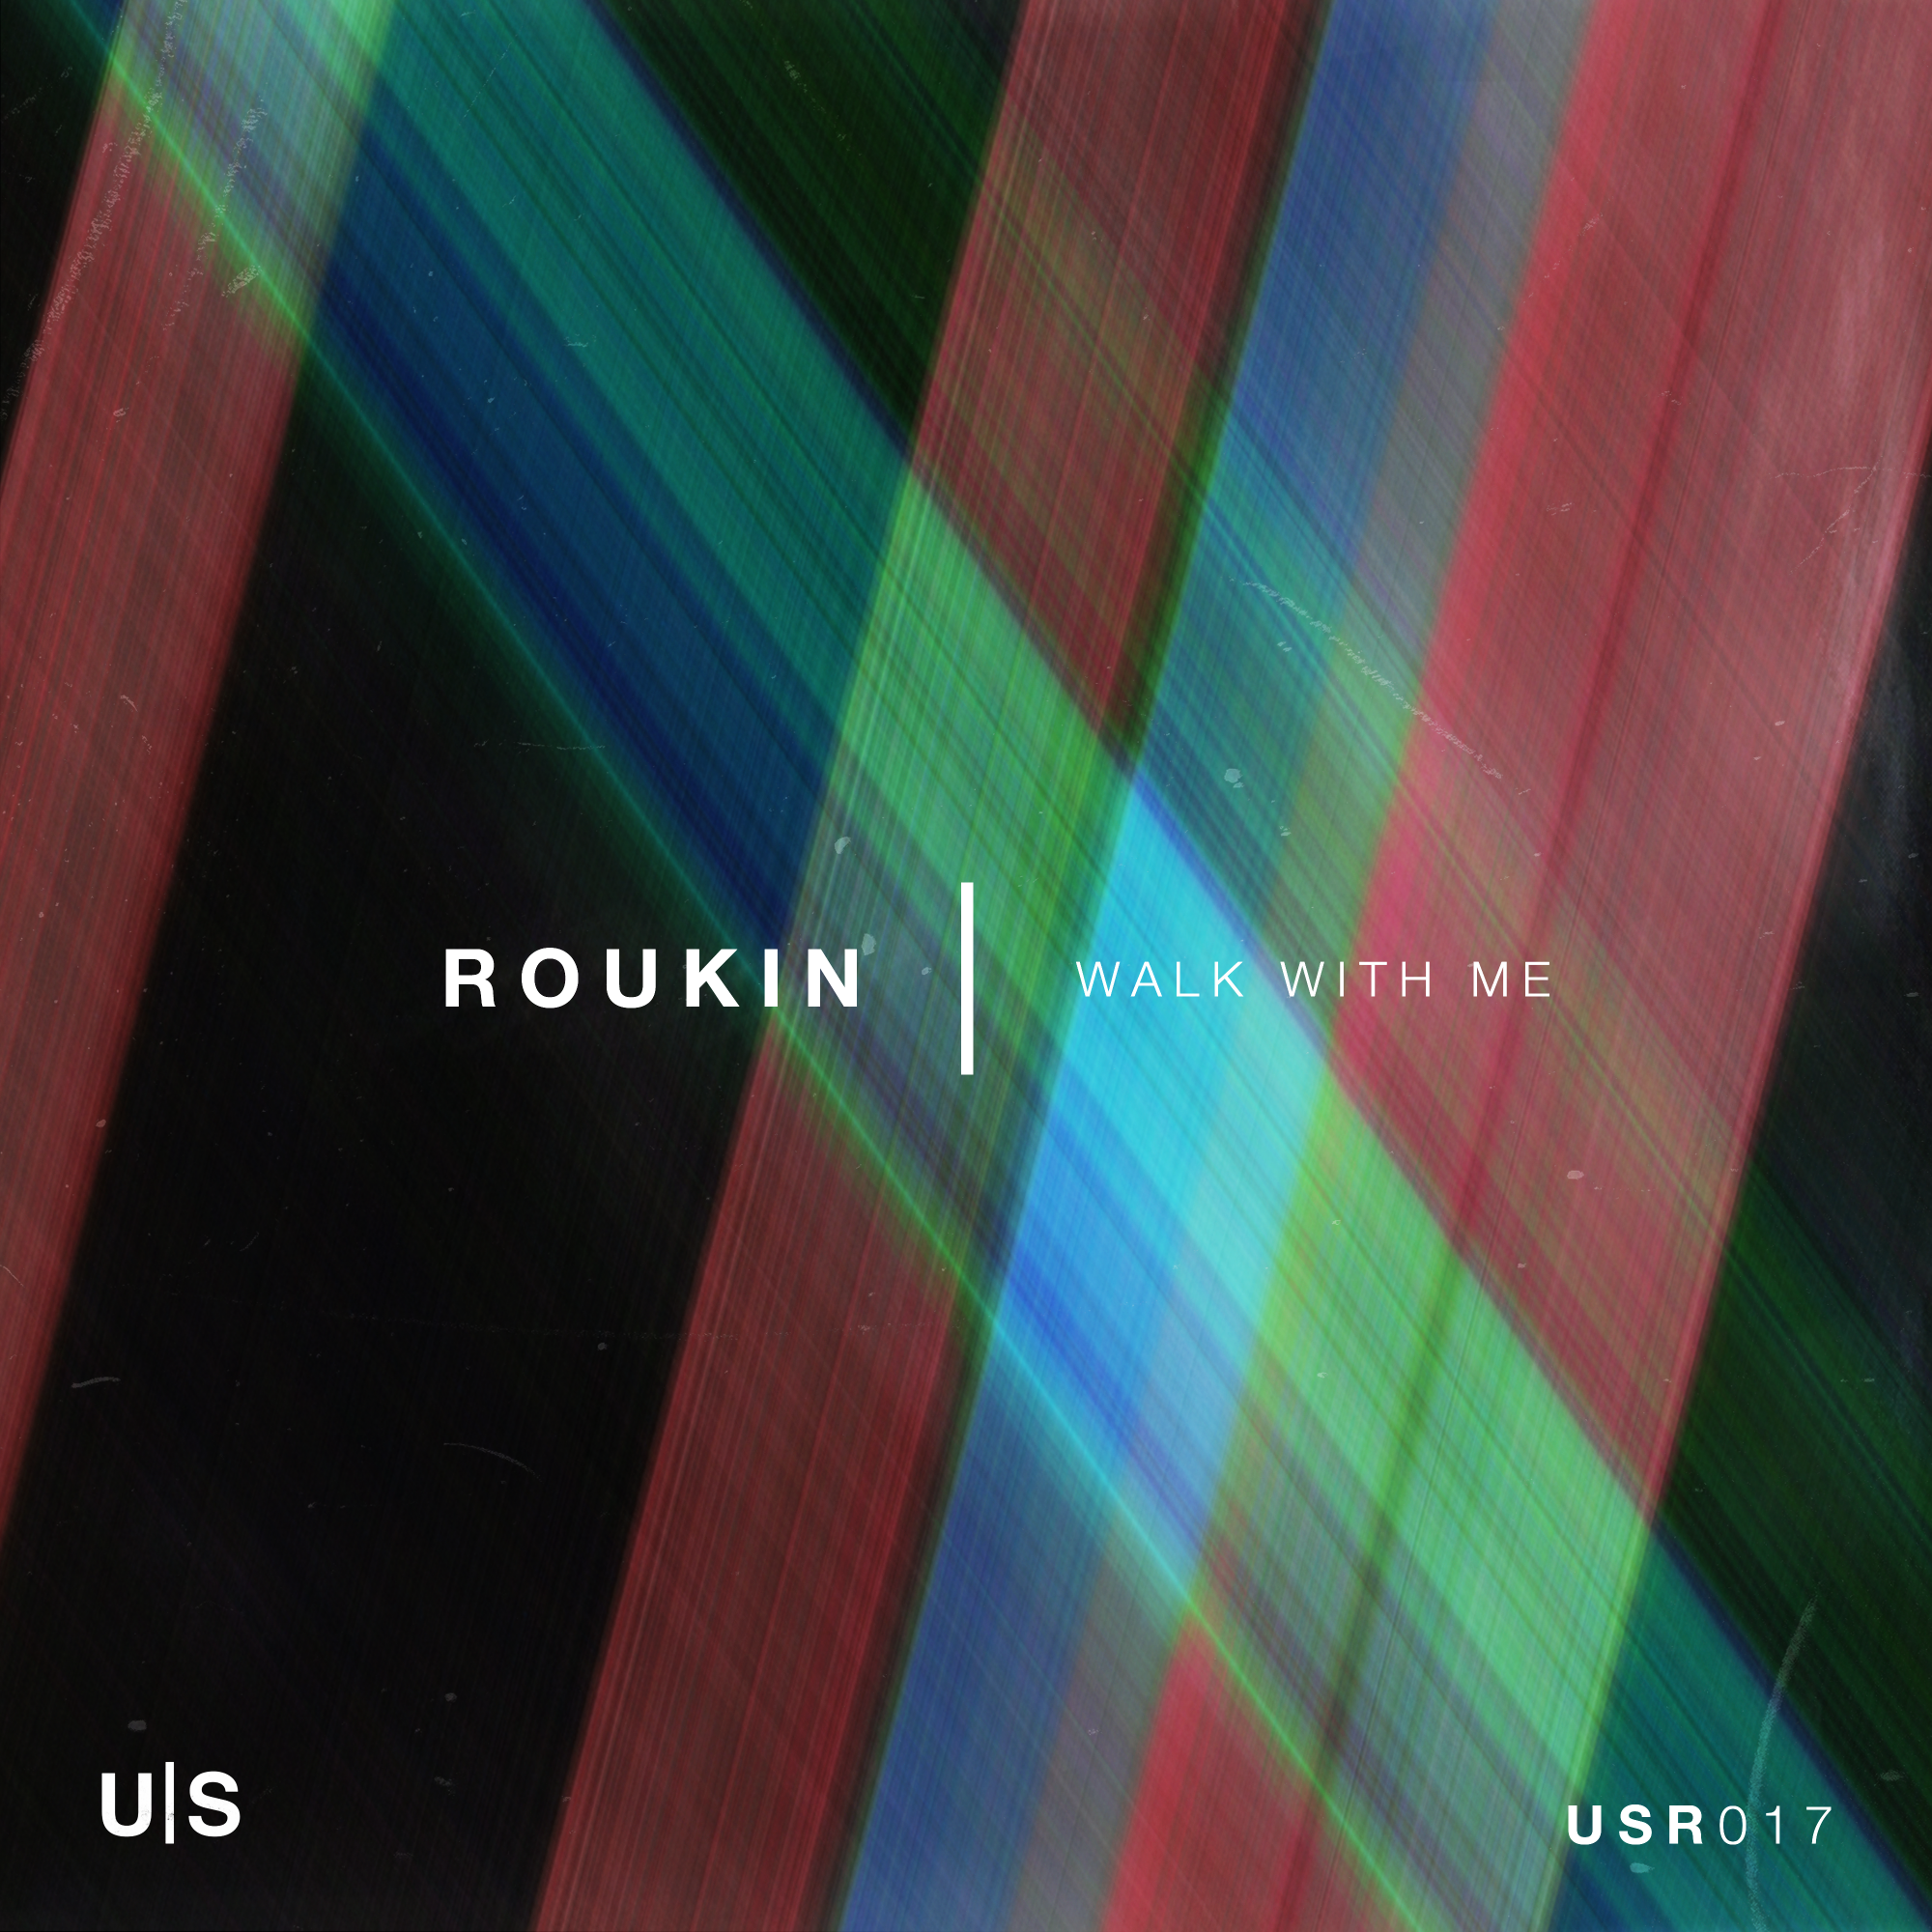 Roukin Walk With Me EP